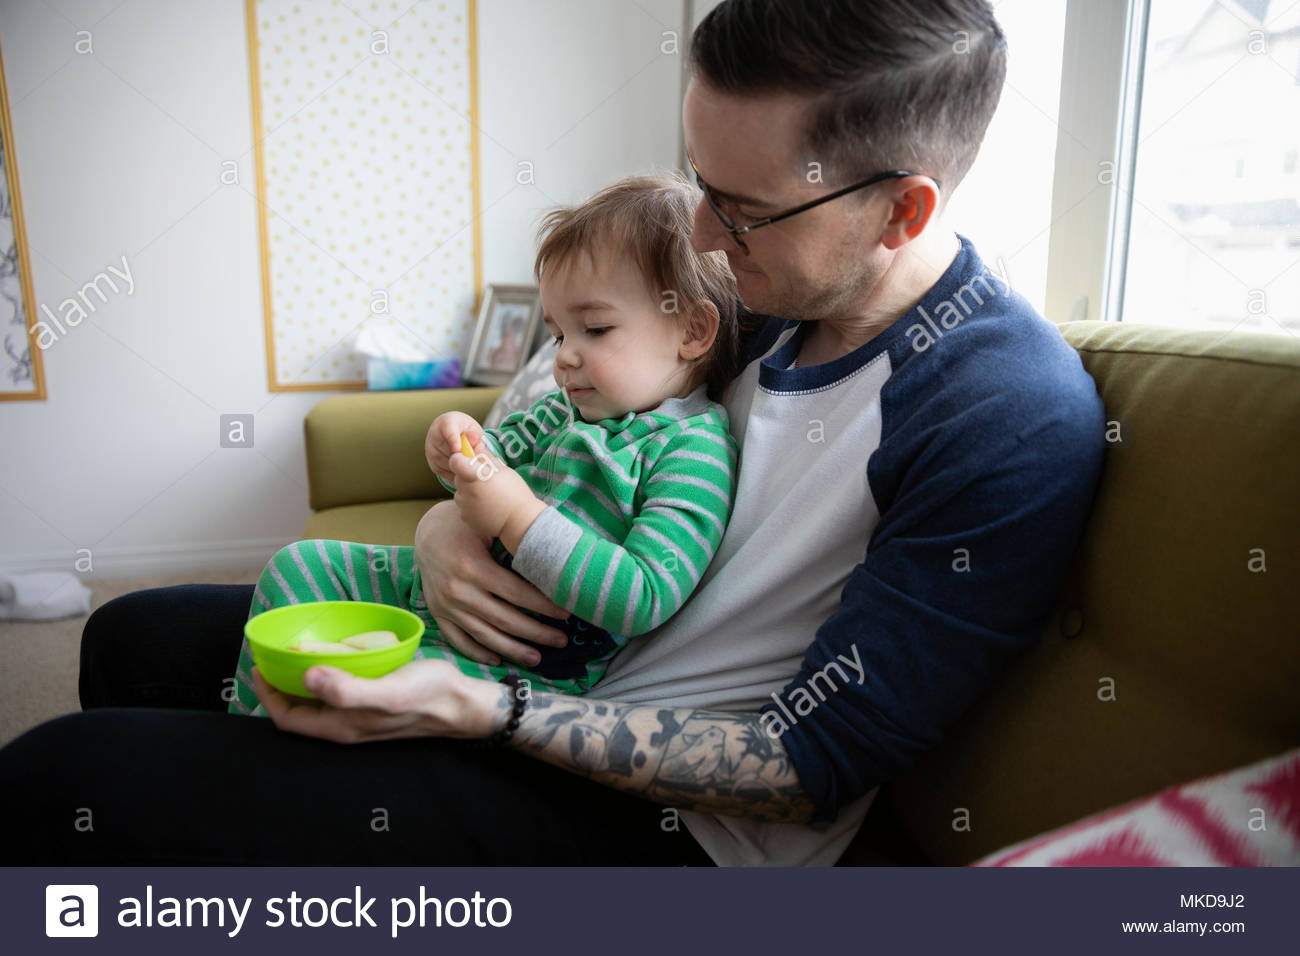 Father feeding baby son on sofa - Stock Image